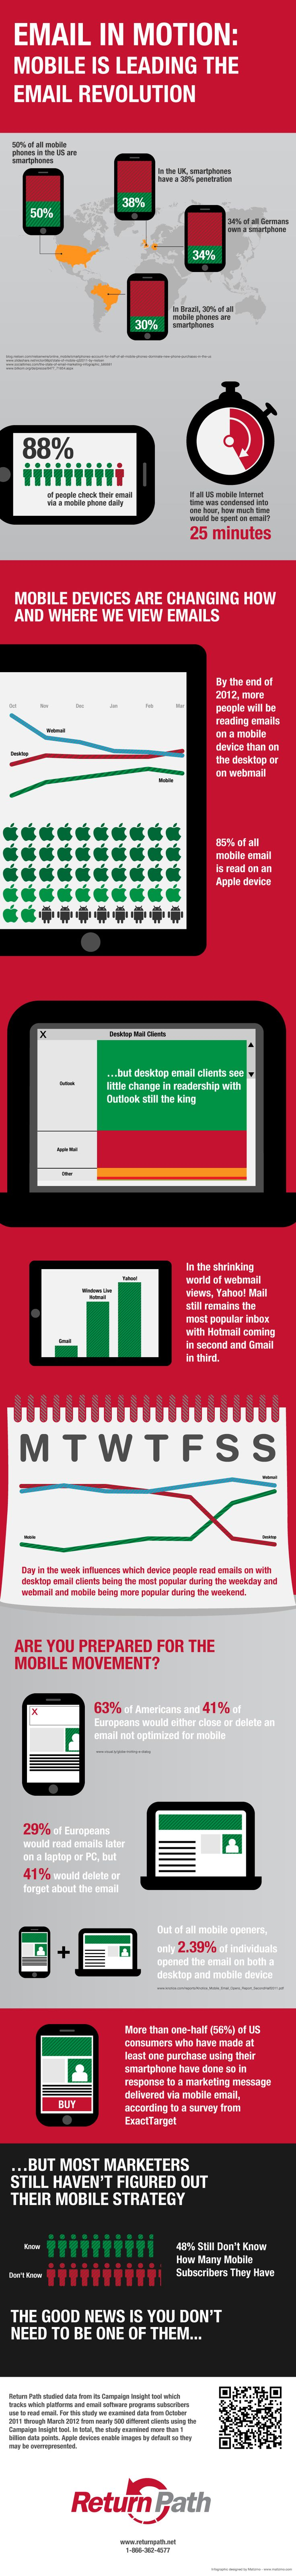 Email in Motion - Mobile is Leading the eMail Revolution #Infographic